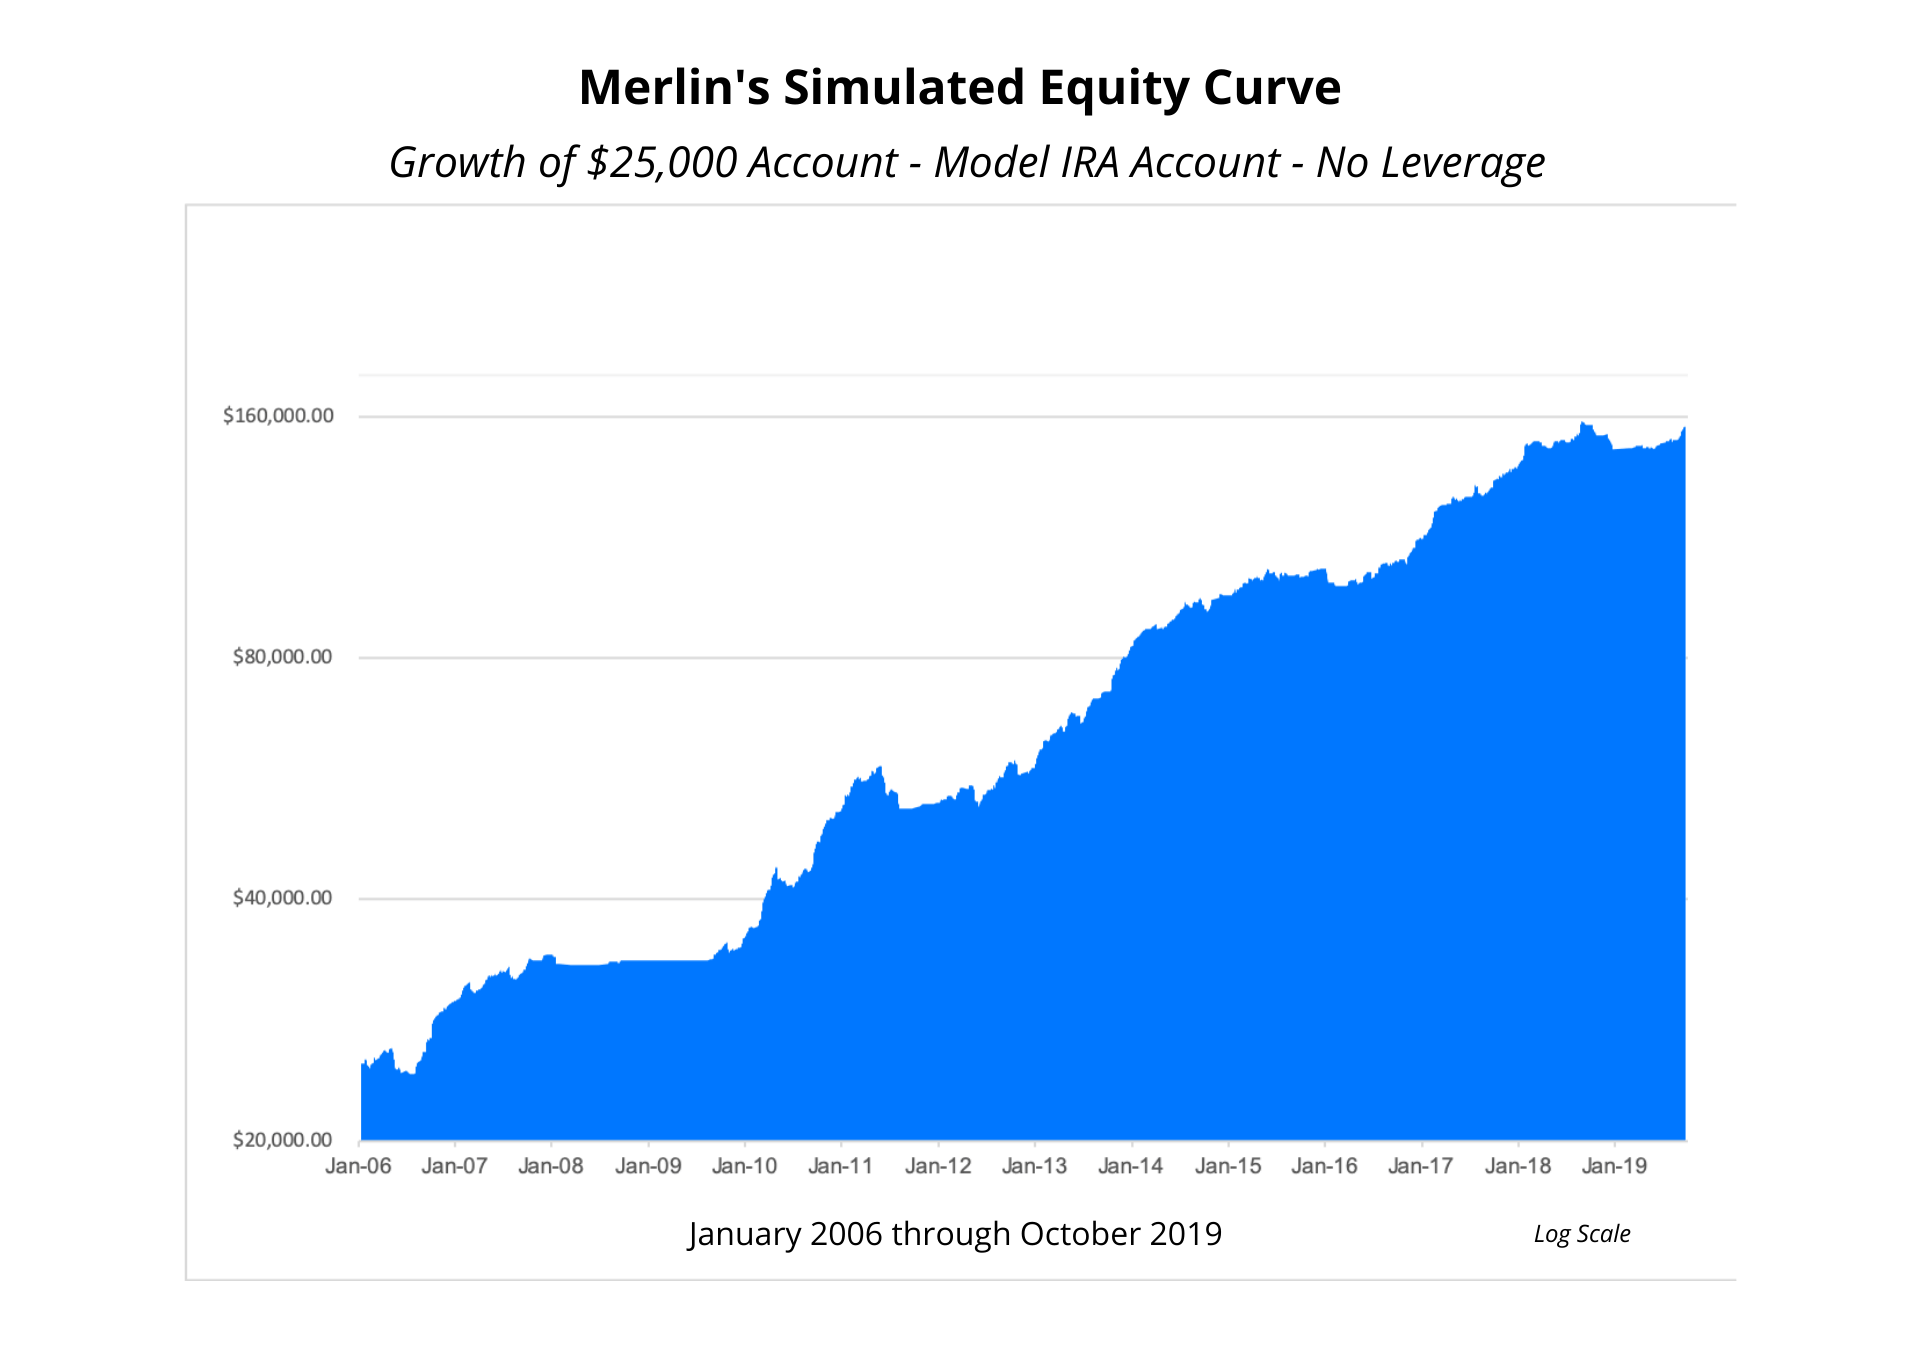 Merlin Trading System IRA Equity Curve Image